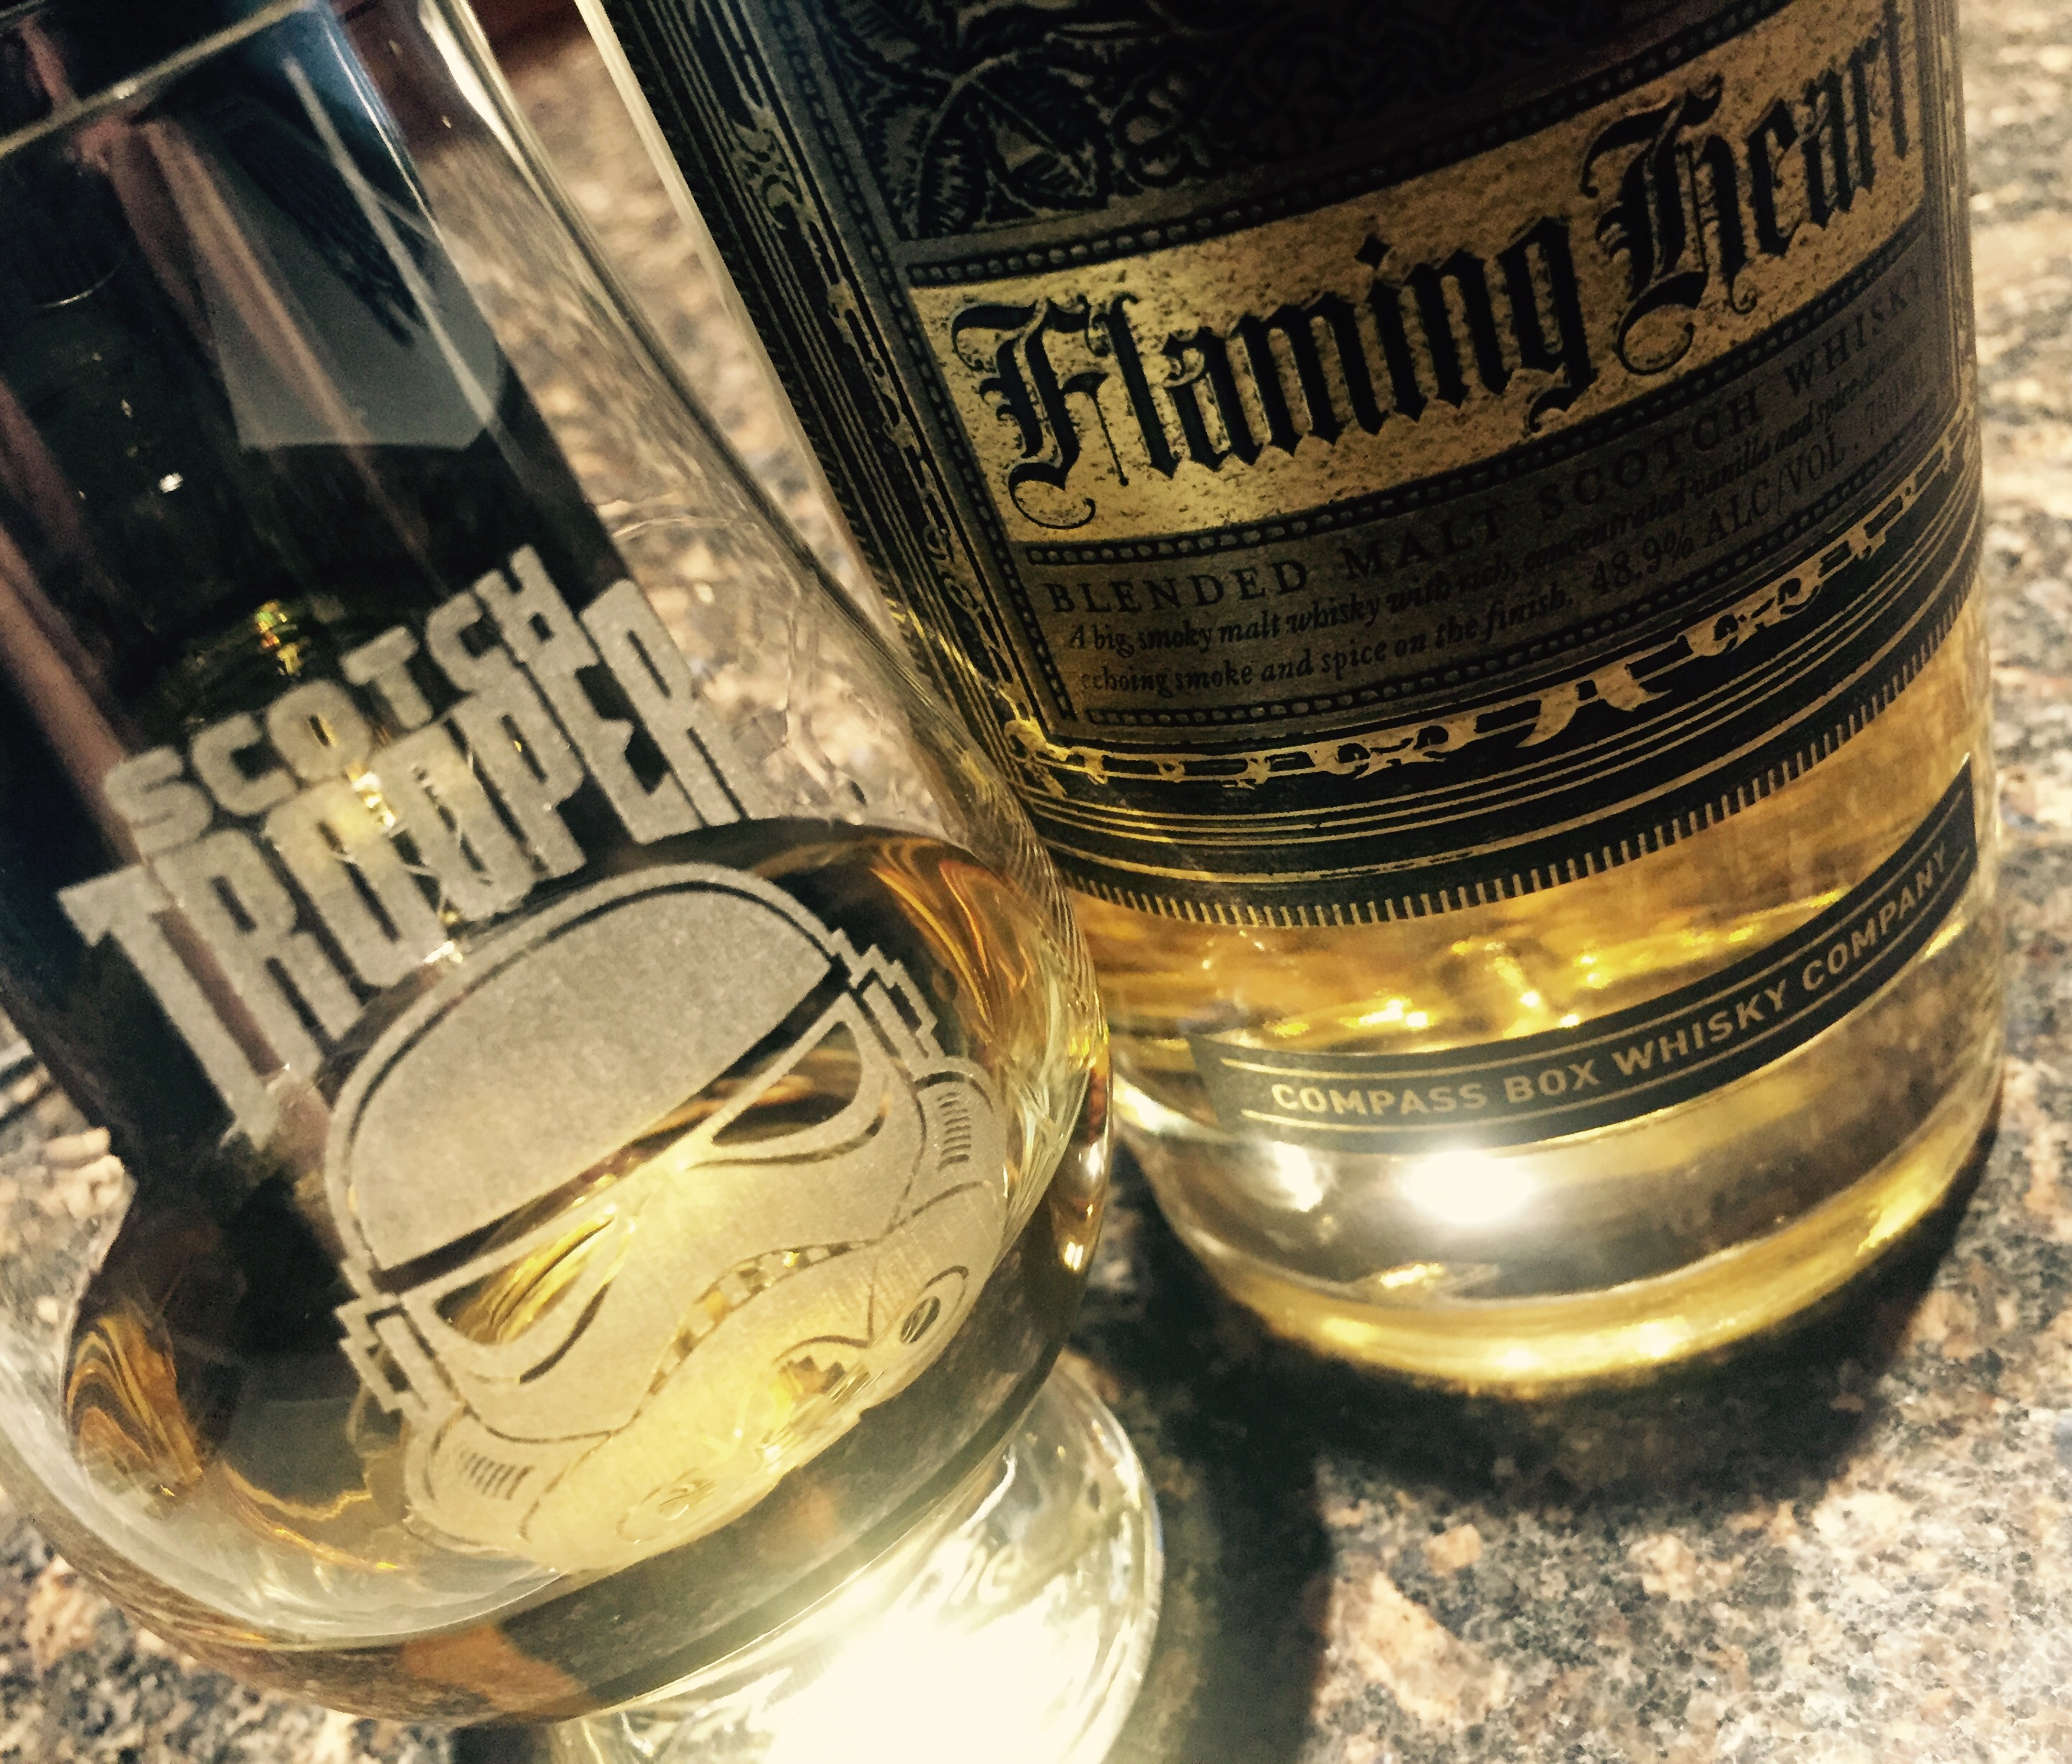 Compass Box Flaming Heart Scotch Trooper